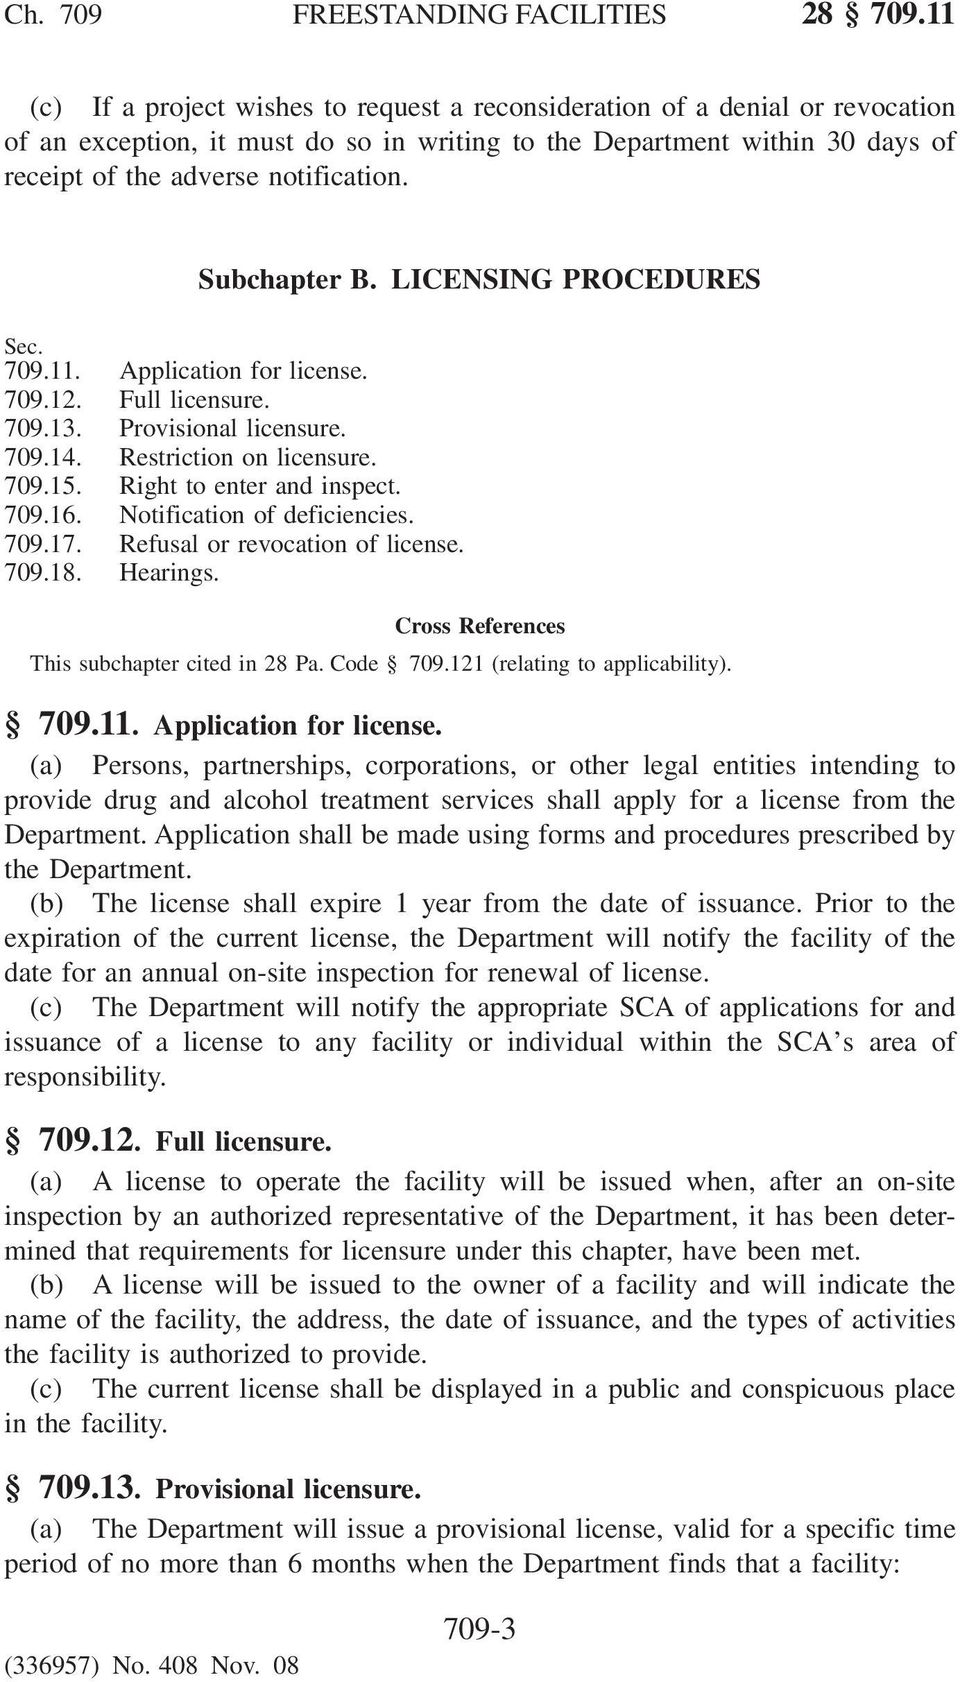 Subchapter B. LICENSING PROCEDURES Sec. 709.11. Application for license. 709.12. Full licensure. 709.13. Provisional licensure. 709.14. Restriction on licensure. 709.15. Right to enter and inspect.